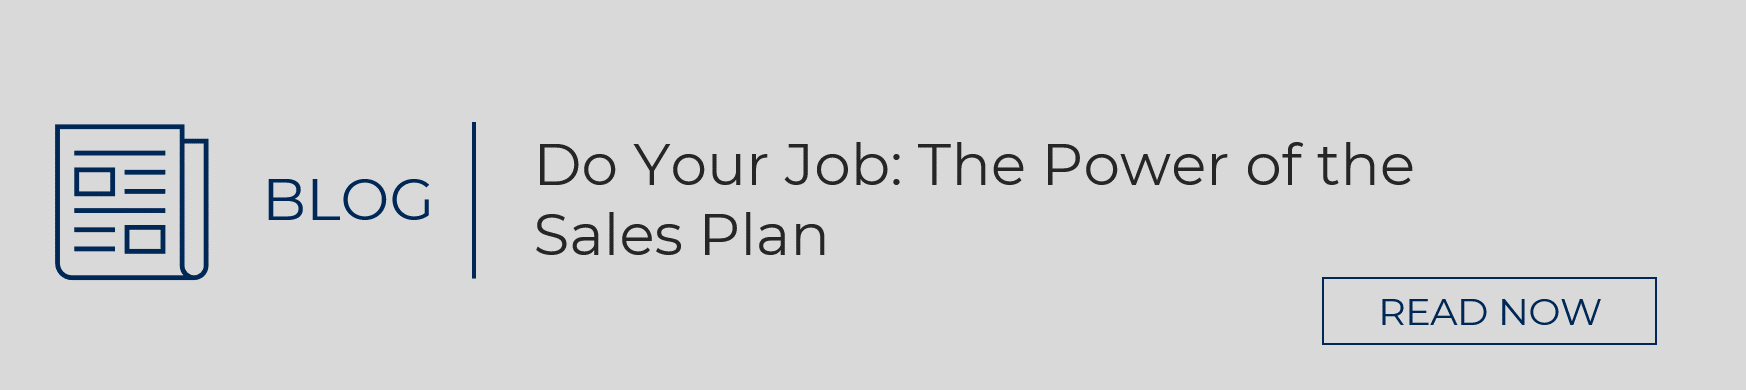 Read Blog: The Power of the Sales Plan